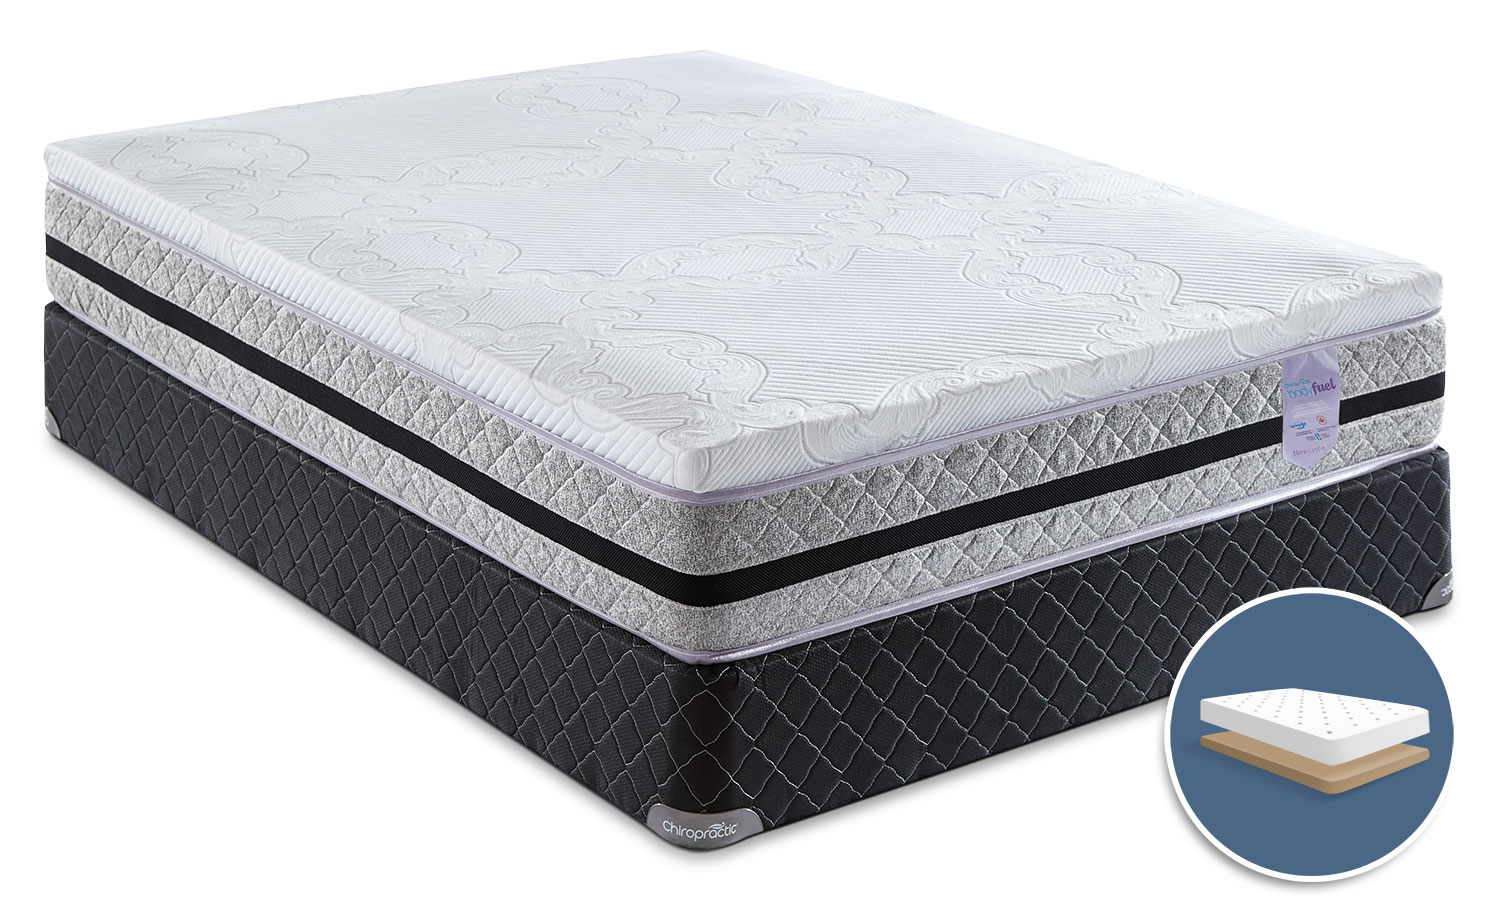 Mattresses and Bedding - Springwall Chiropractic® Newcastle Hybrid Tight-Top Low-Profile King Mattress Set